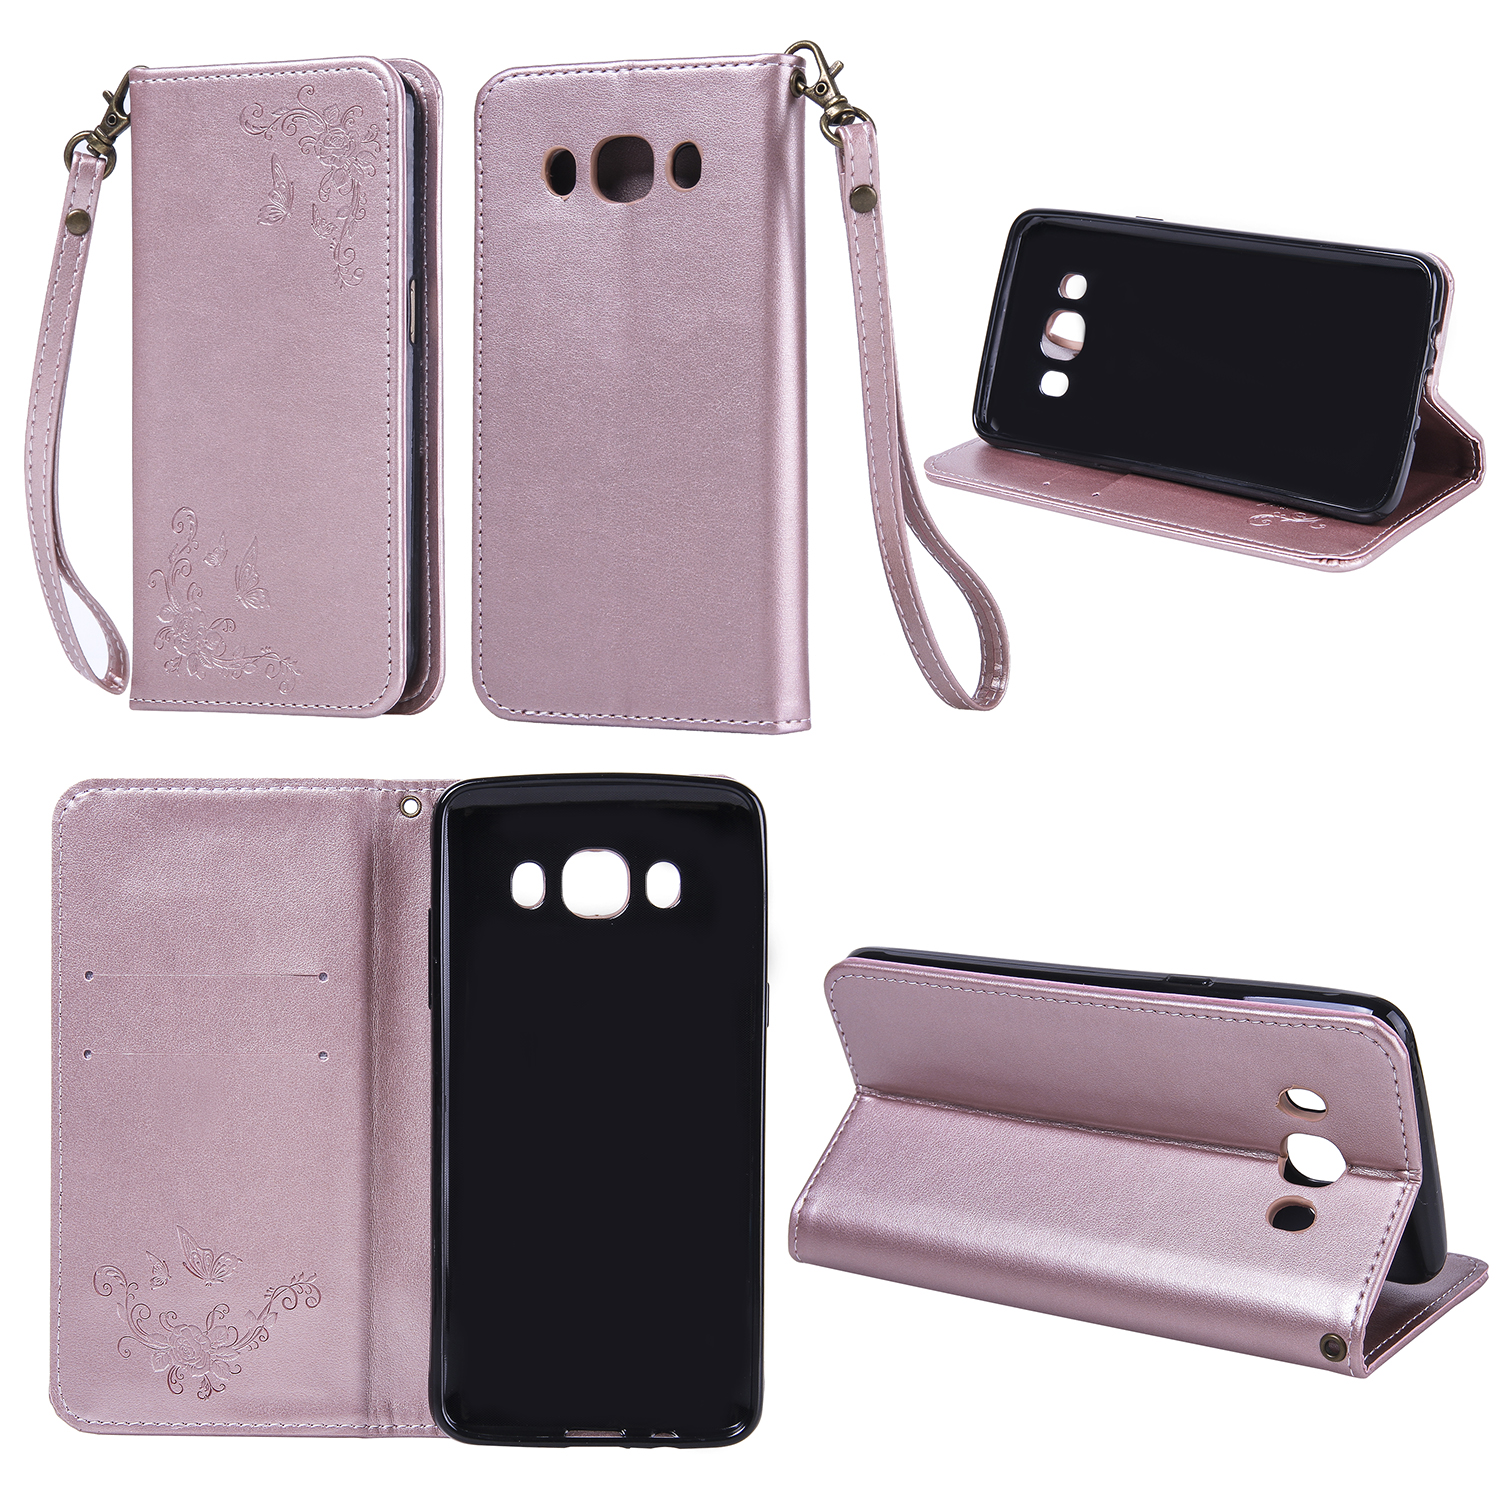 Luxury Retro Leather Wallet Flip Cover For Coque Samsung Galaxy J5 Case J510 J510F SM-J510F Phone Case for Samsung J5 2016 Bag